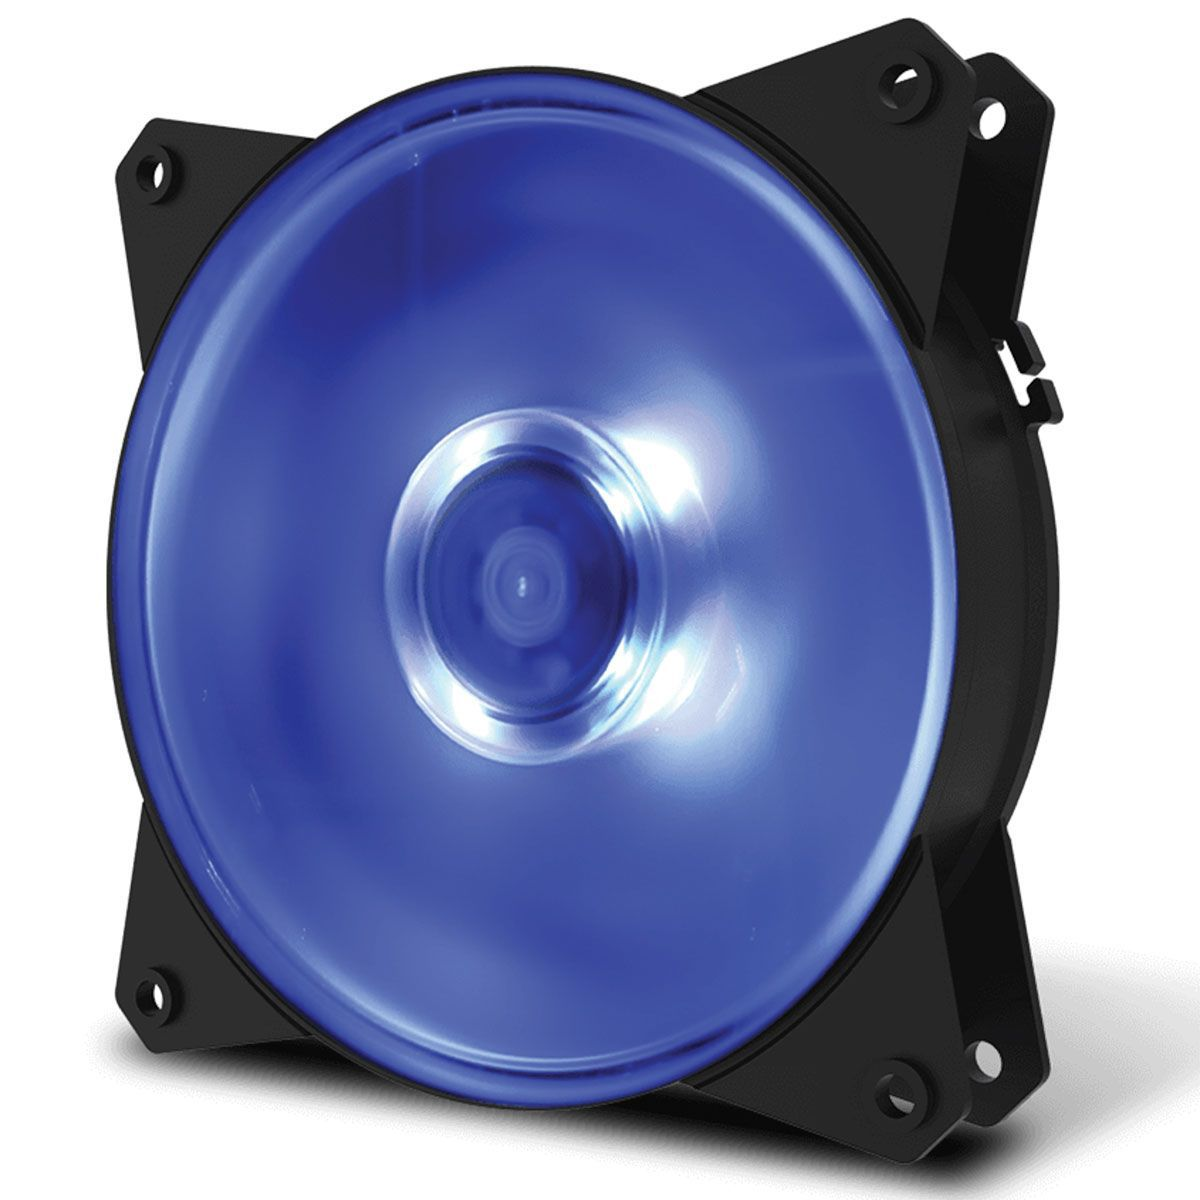 Cooler para gabinete Masterfan 120mm MF120L Led Azul R4-C1DS-12FB-R1 - Coolermaster